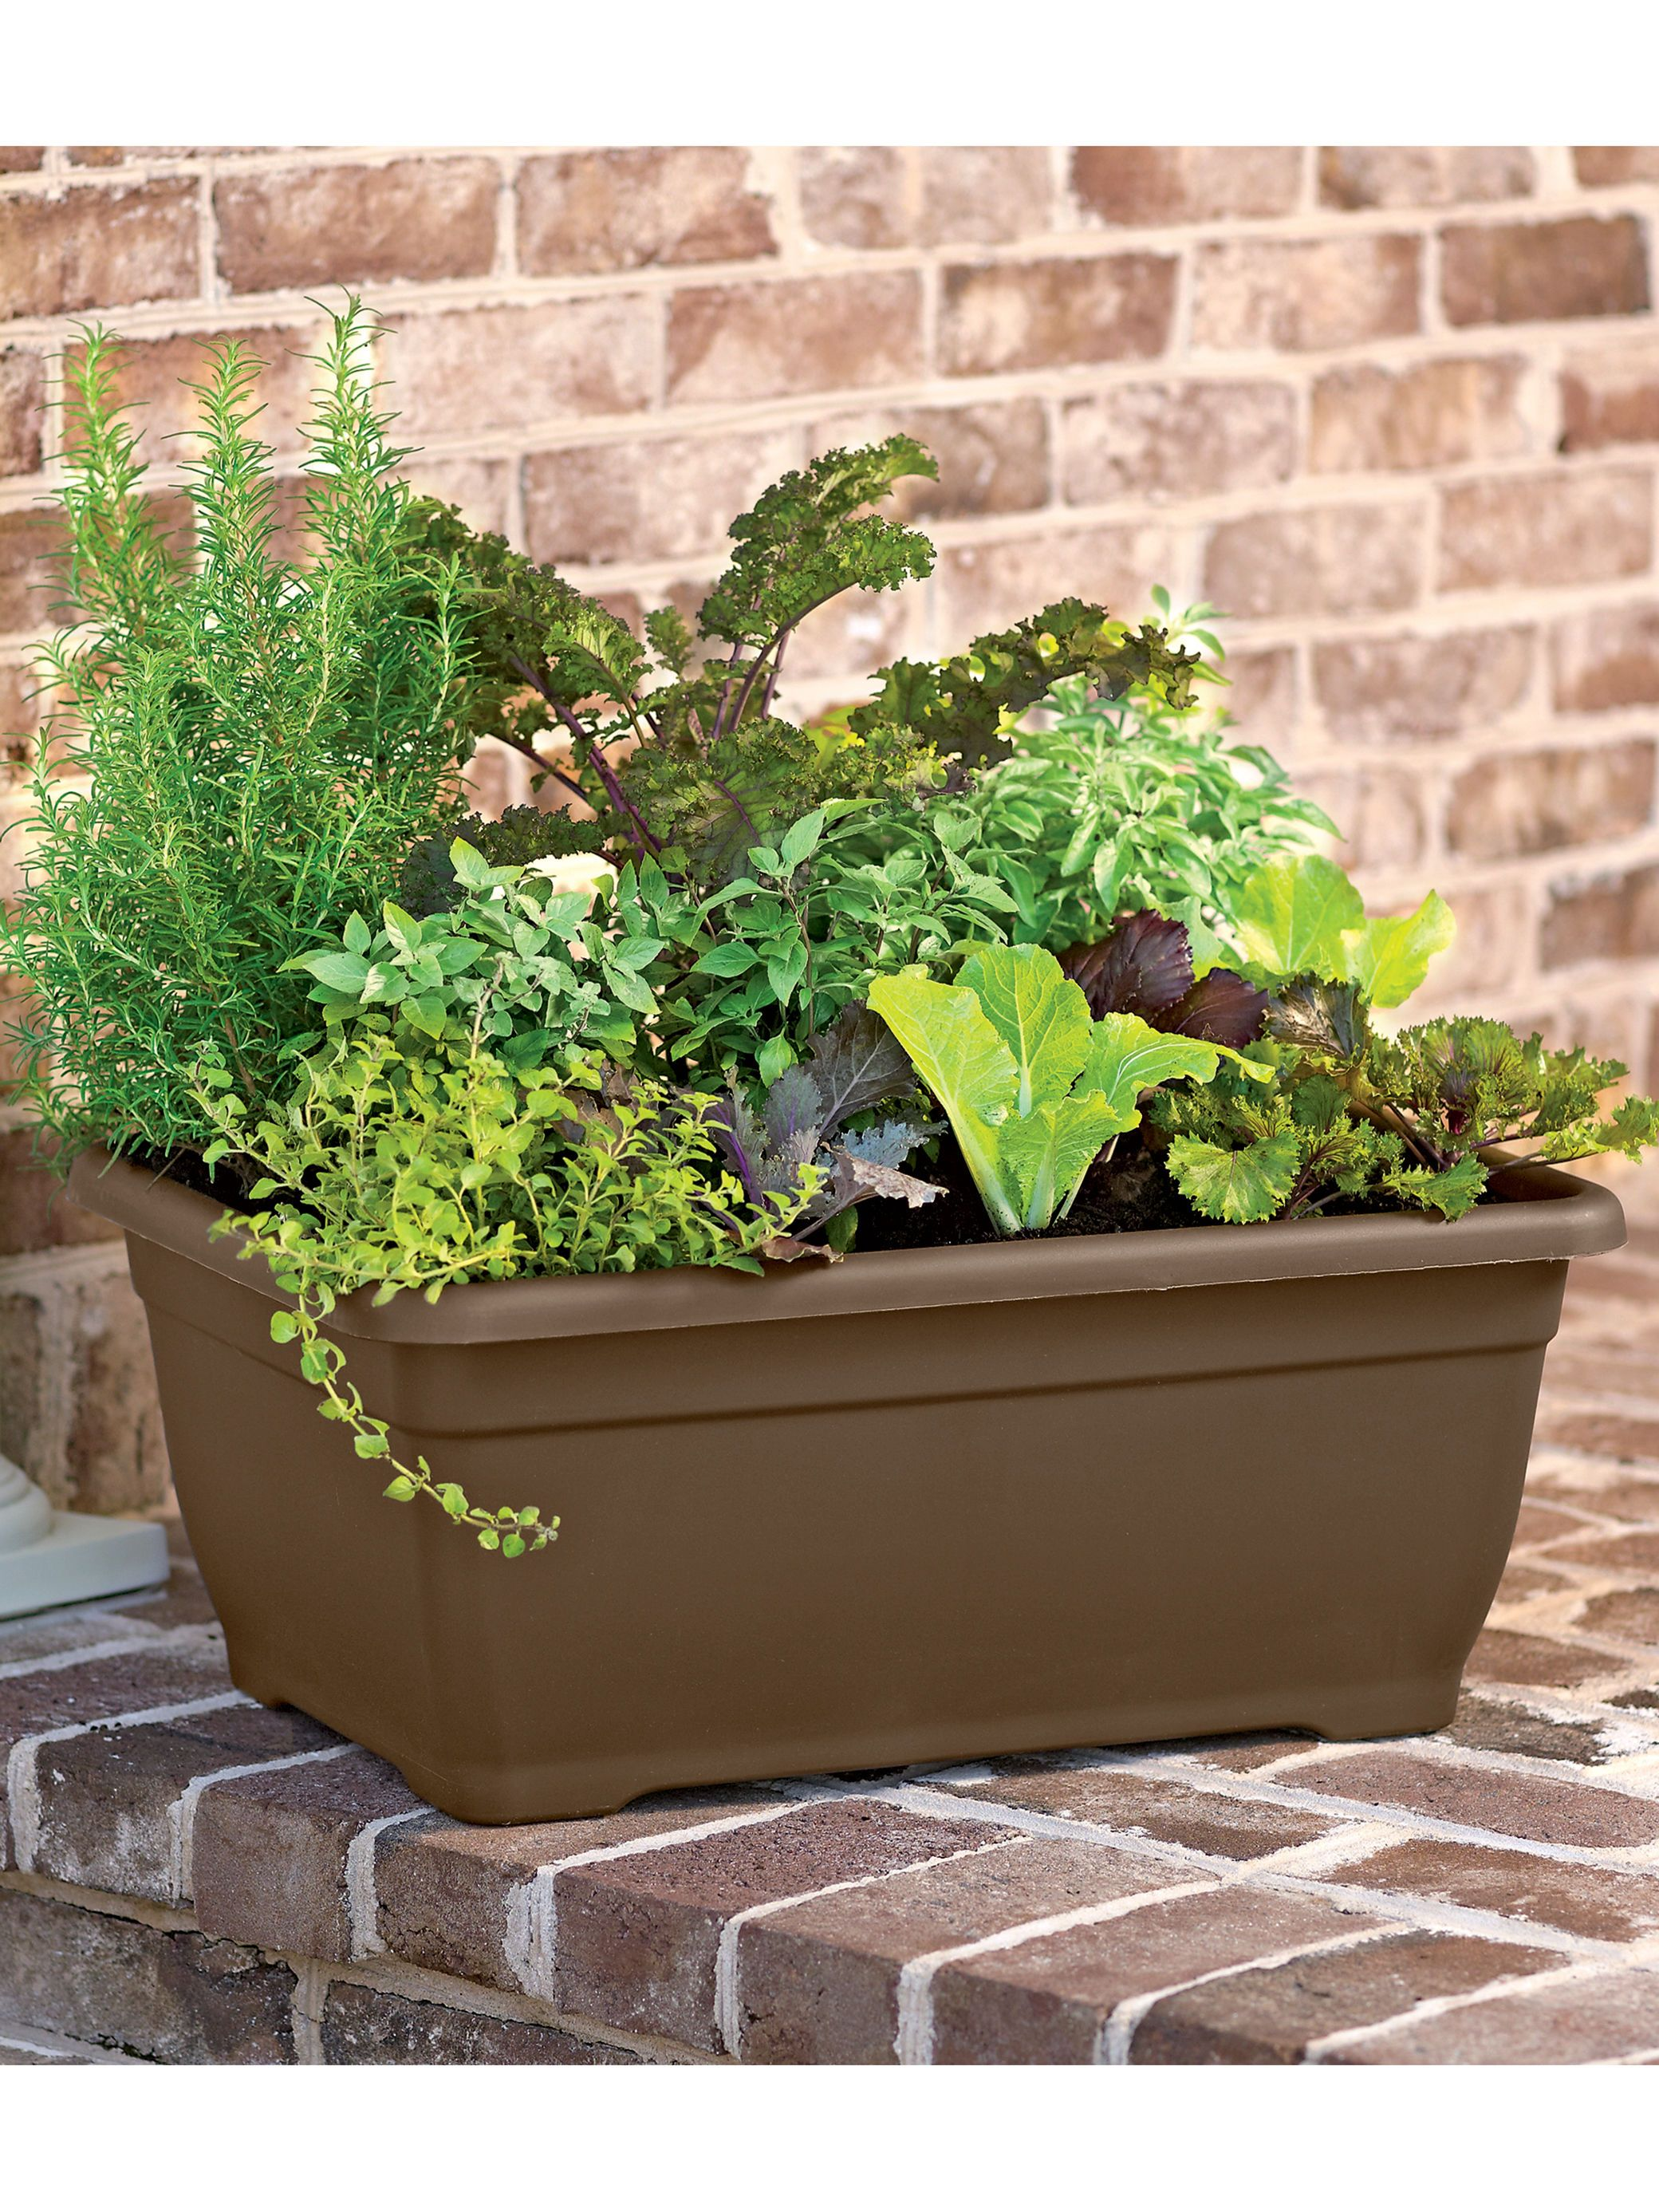 Decorative Planter Square Self Watering Planter